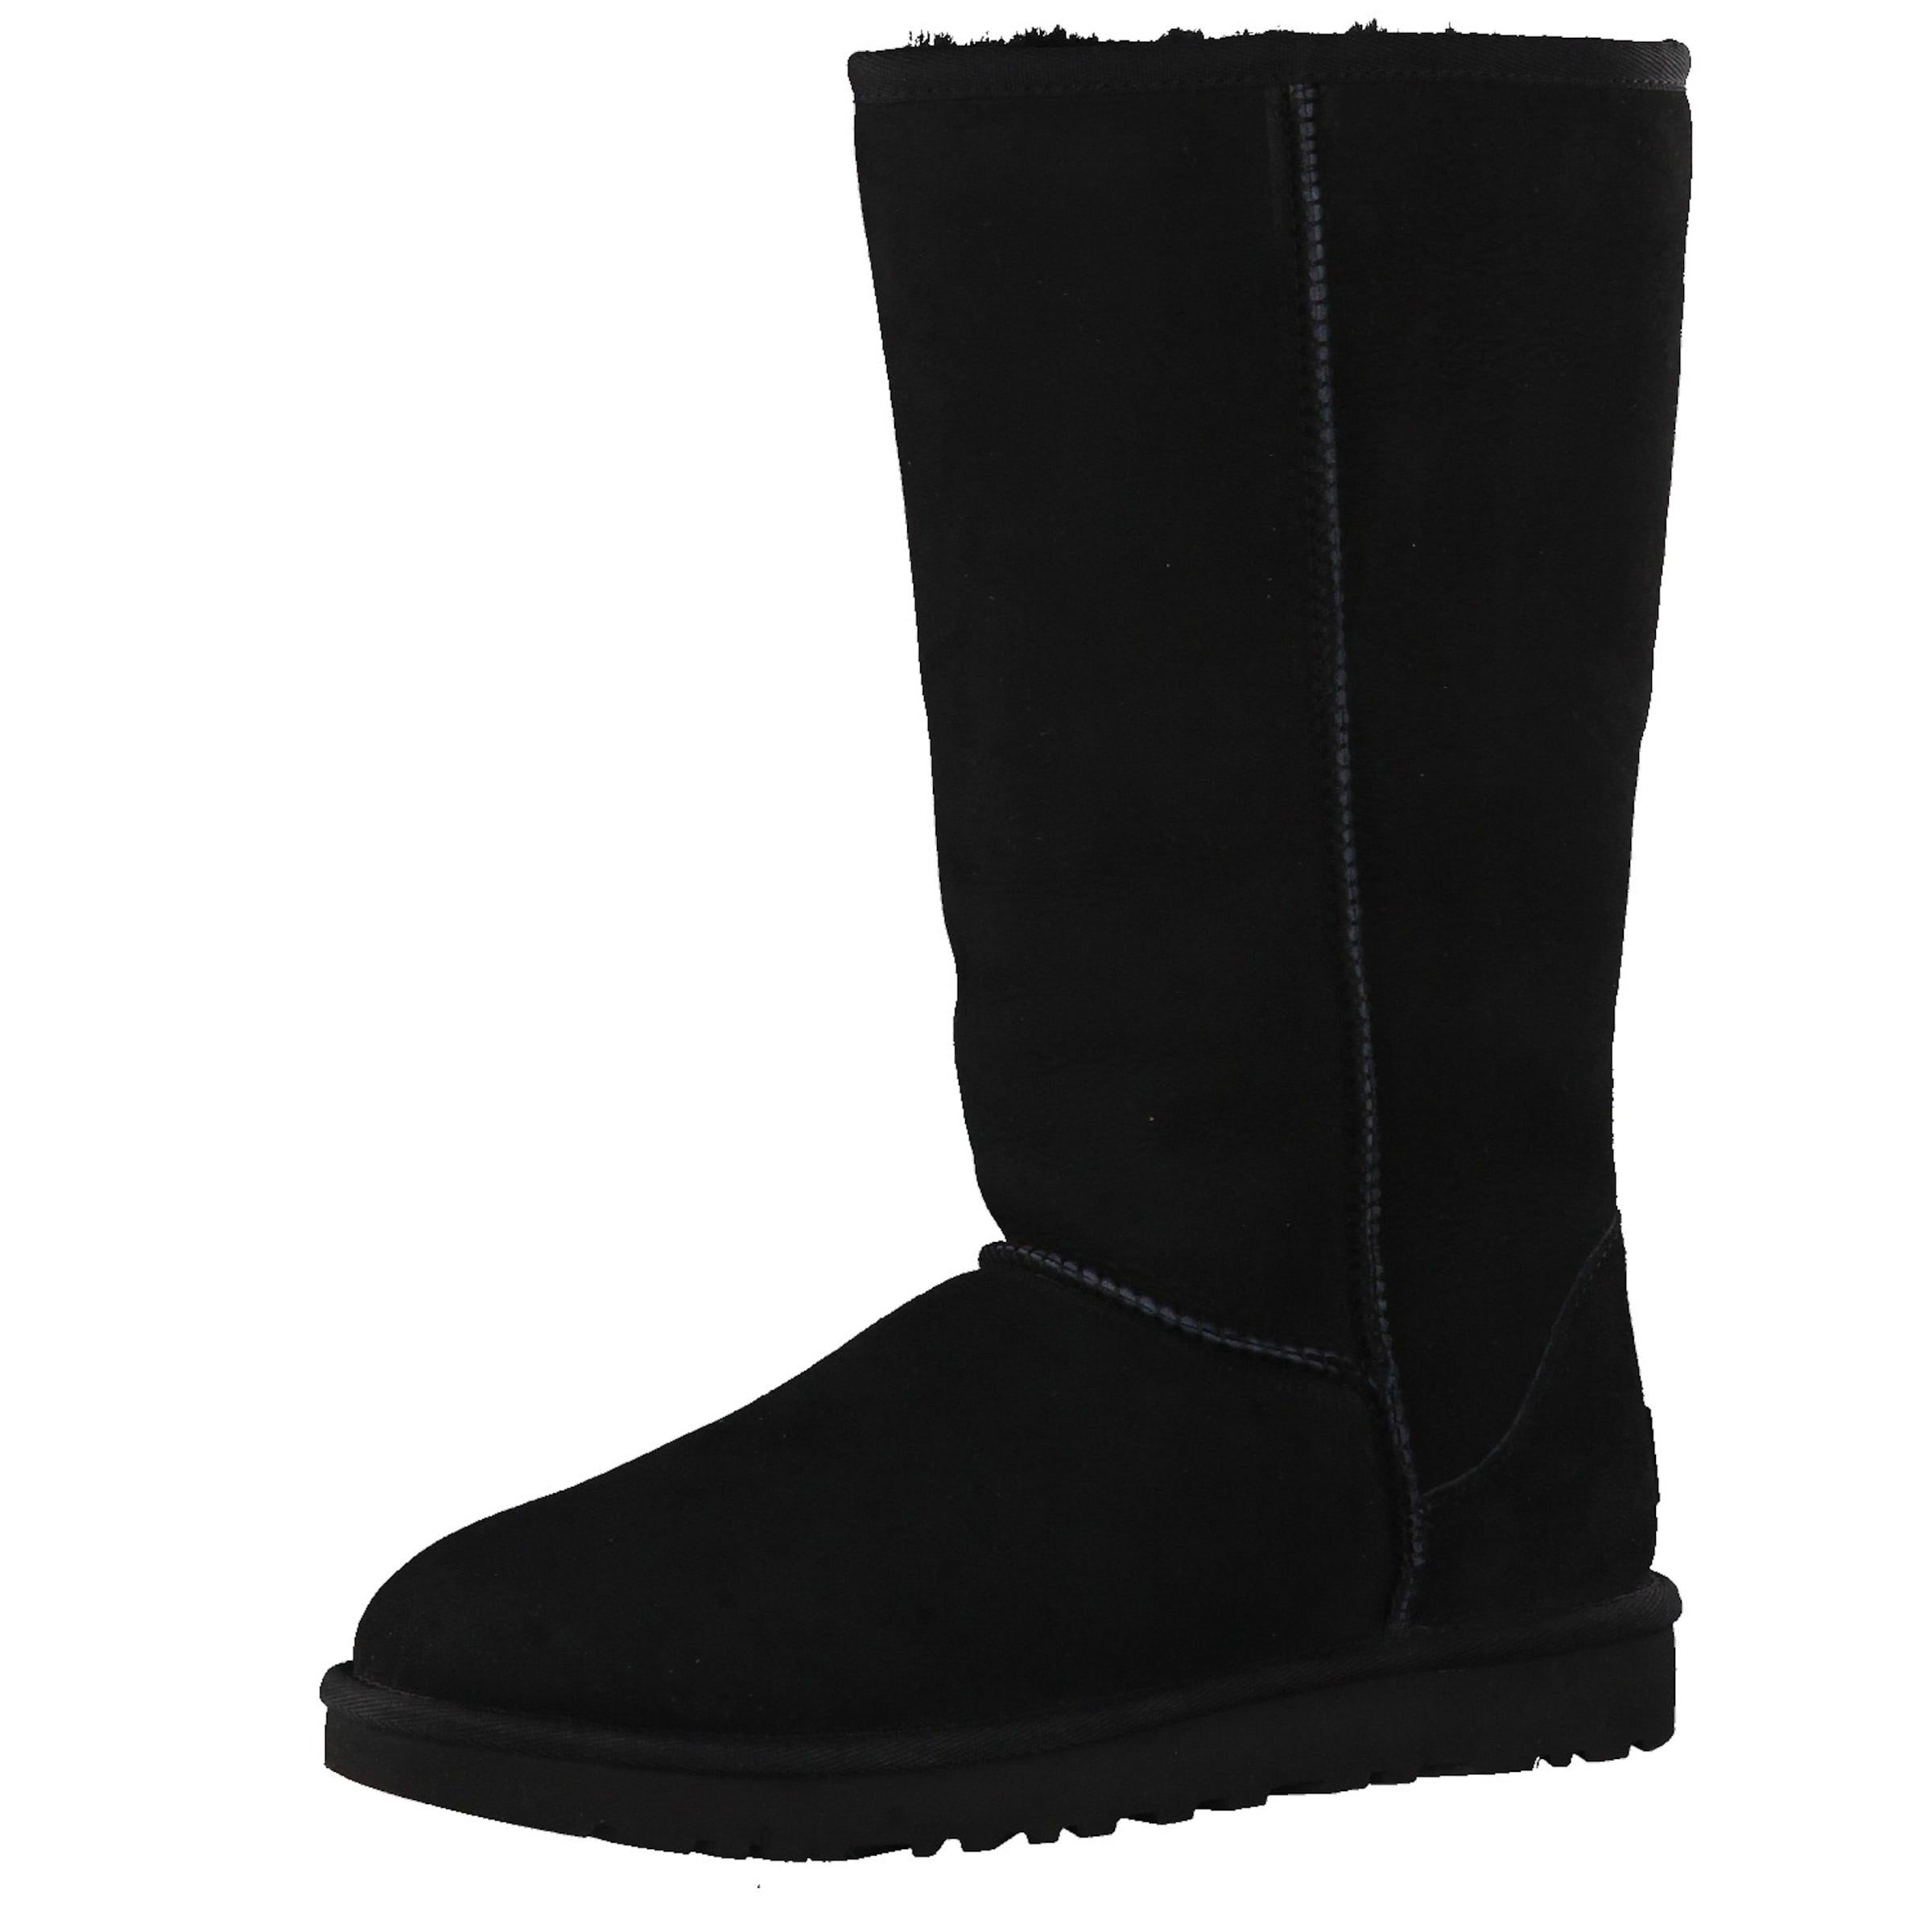 In 'classic Snowboot Schwarz Ugg Tall' IgvY6y7bf